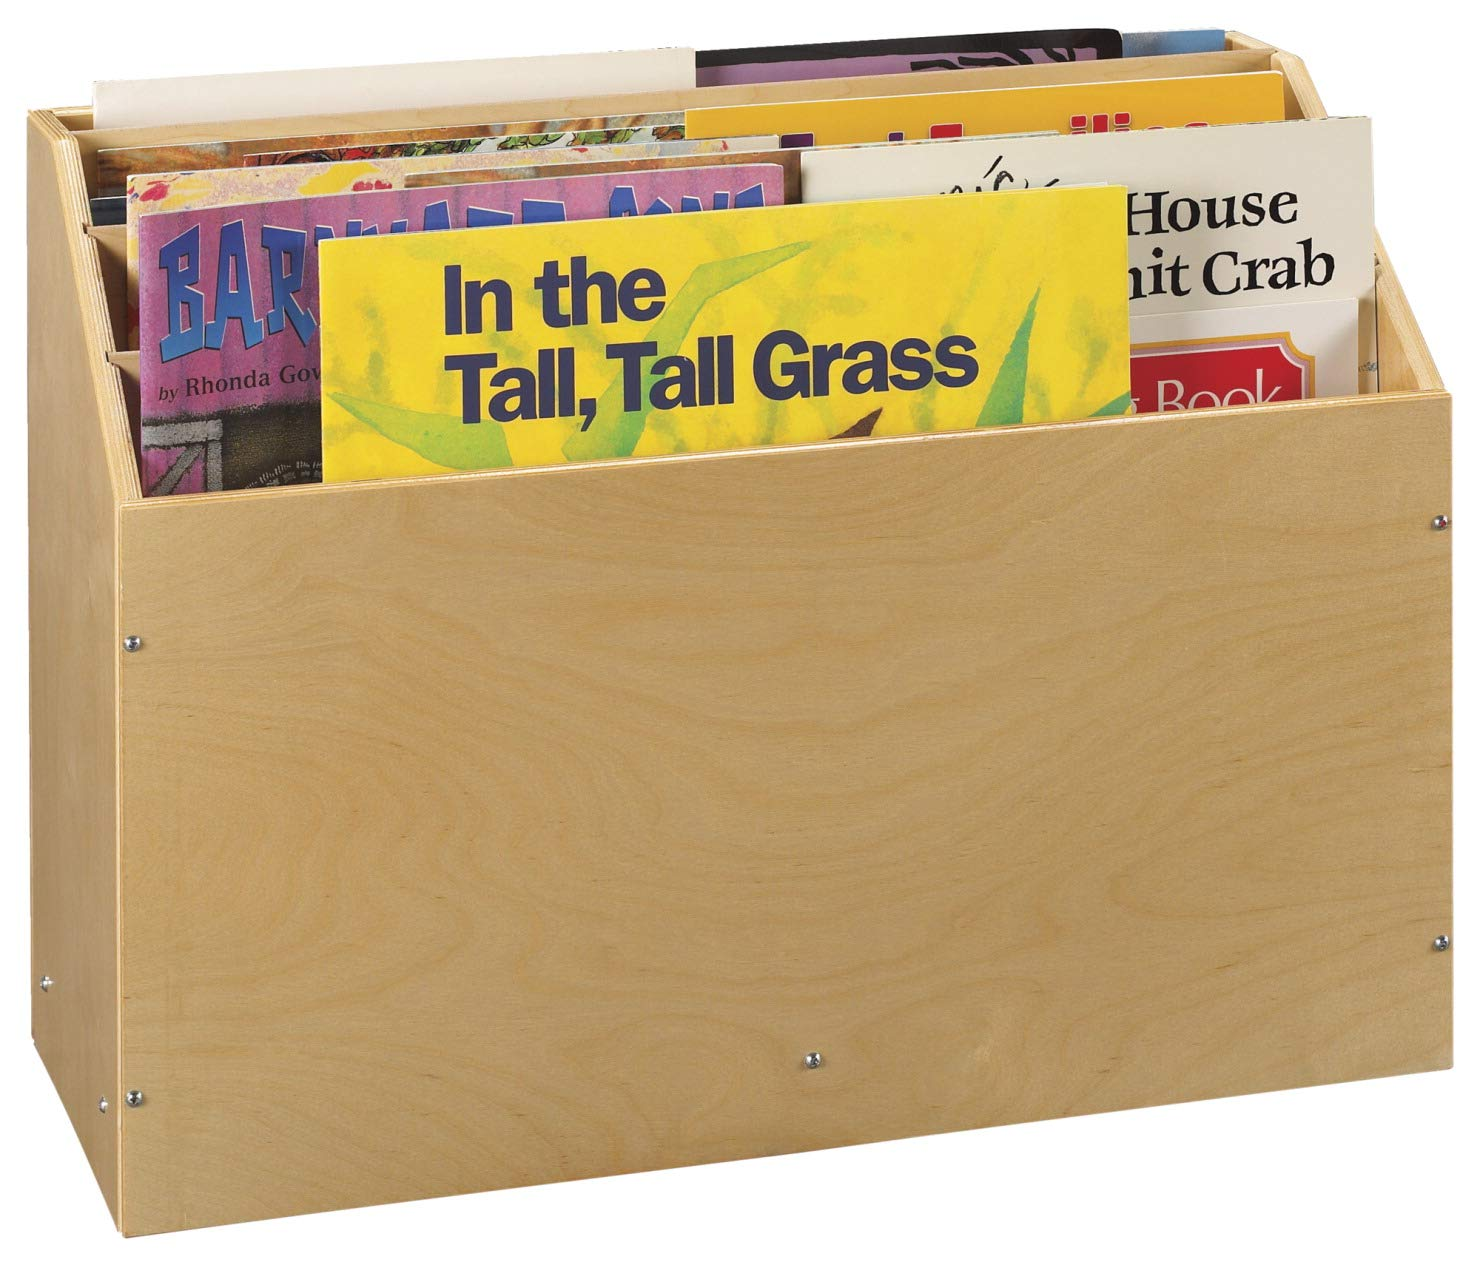 Childcraft Mobile Big Book Storage, 4 Compartments, 29-3/4 x 12-1/2 x 22-5/8 Inches by Childcraft